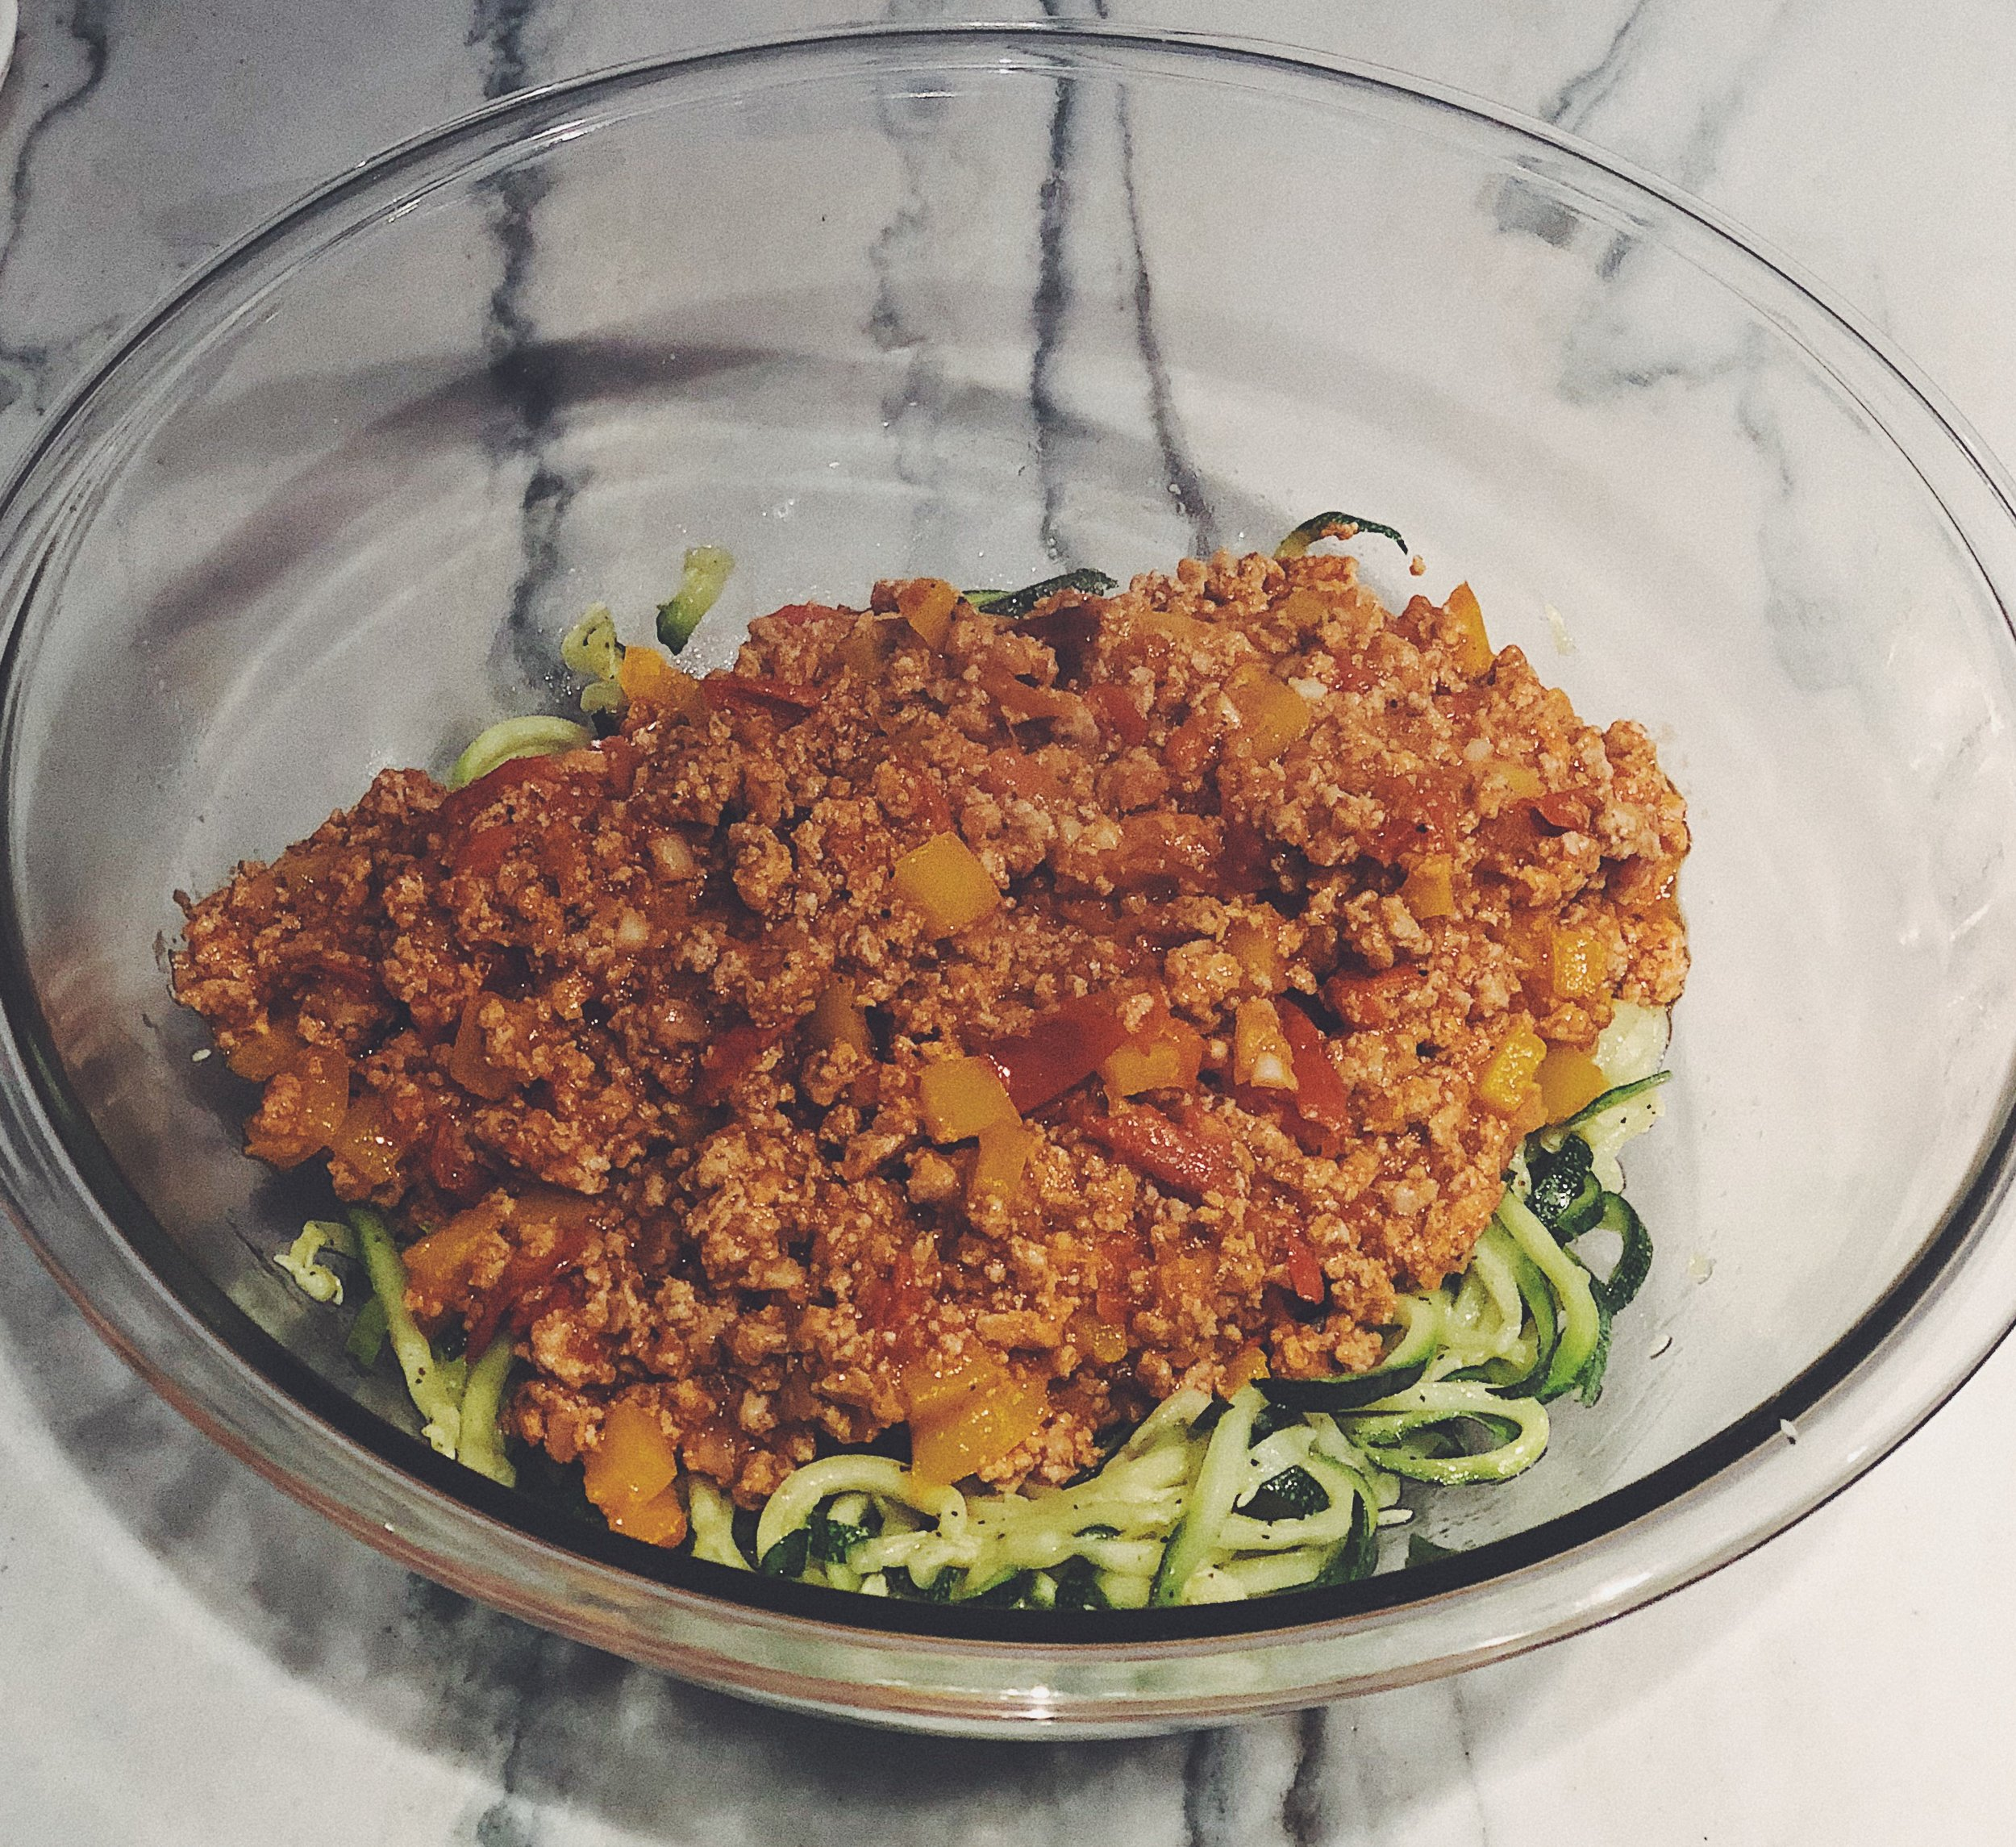 the ultimate Guilt-free Comfort meal. -